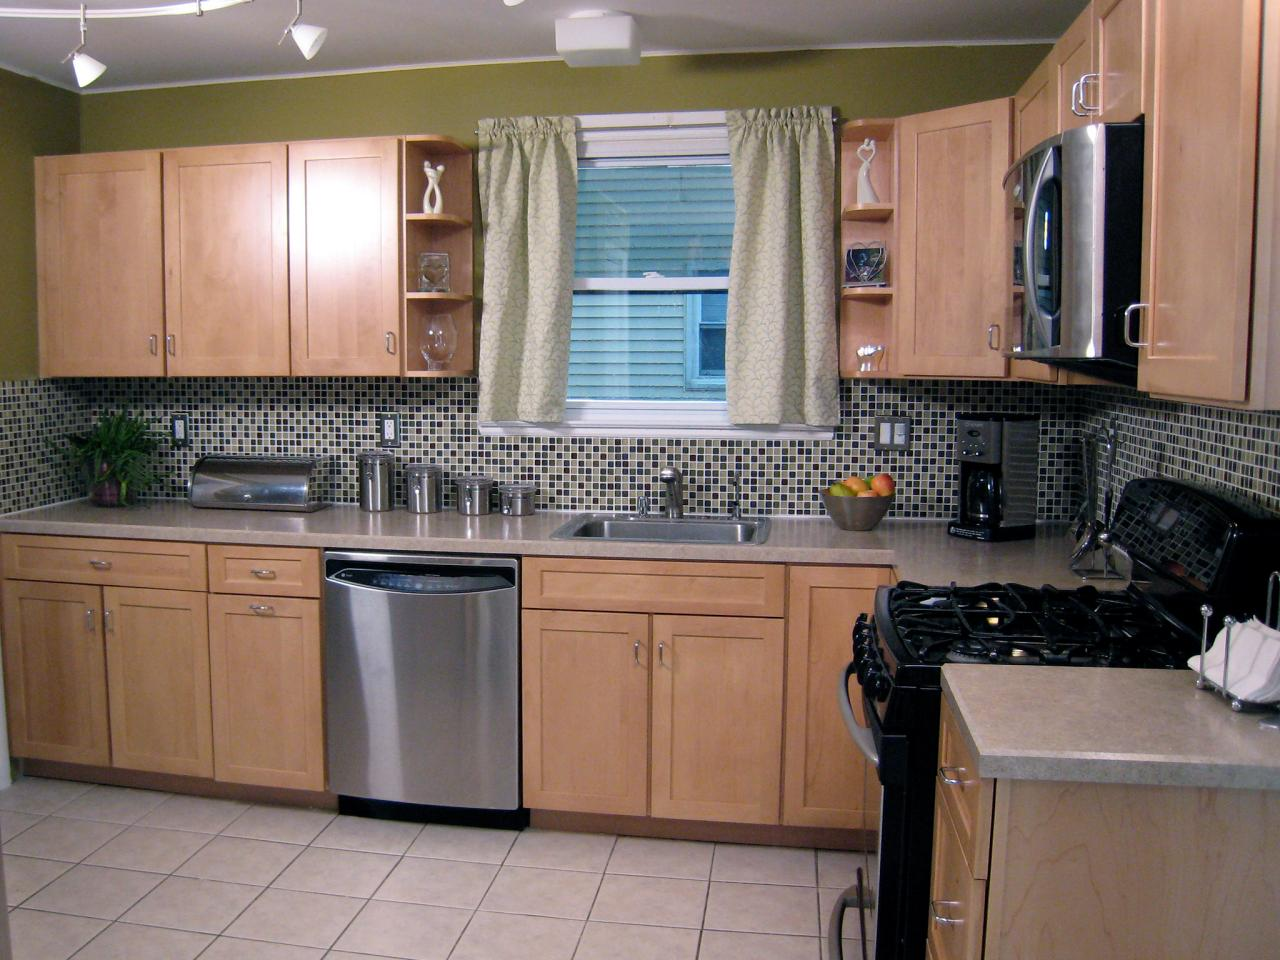 Kitchen Cabinet Ideas with cabinets quick with omega kitchen cabinets with modern style kitchen cabinets